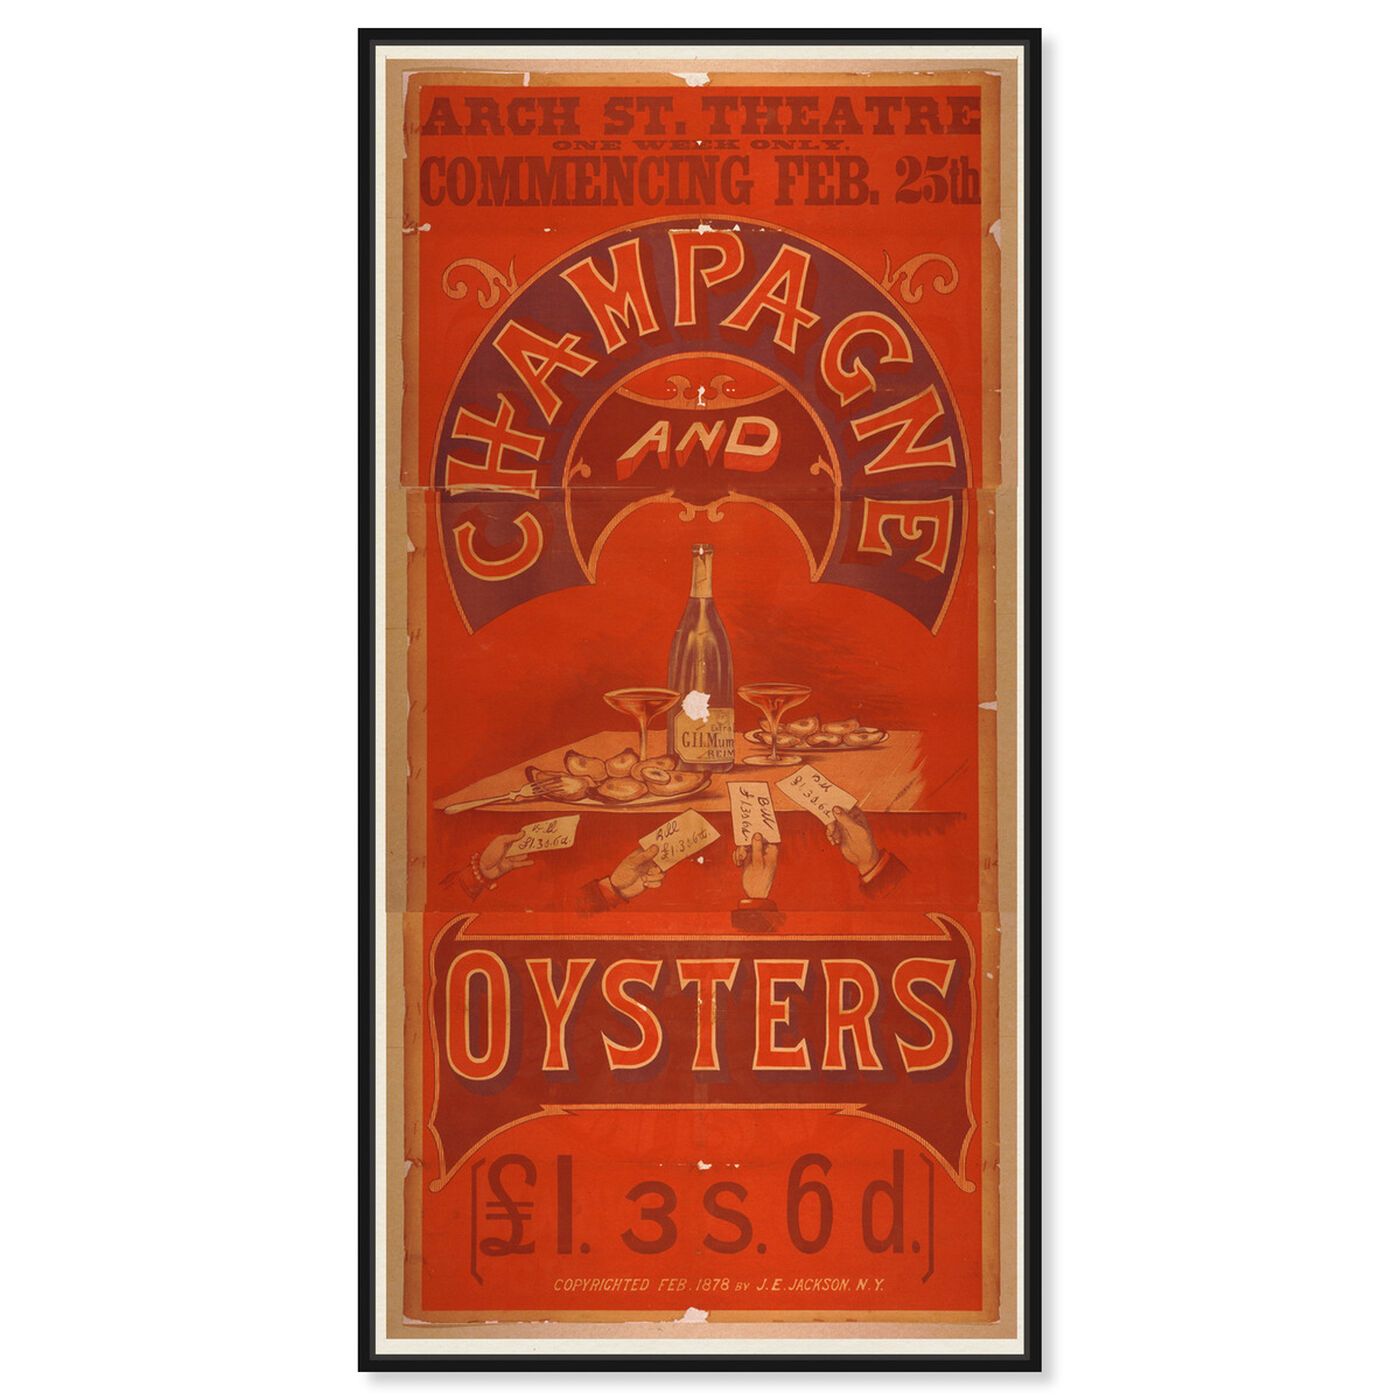 Front view of Champagne and Oysters featuring advertising and posters art.